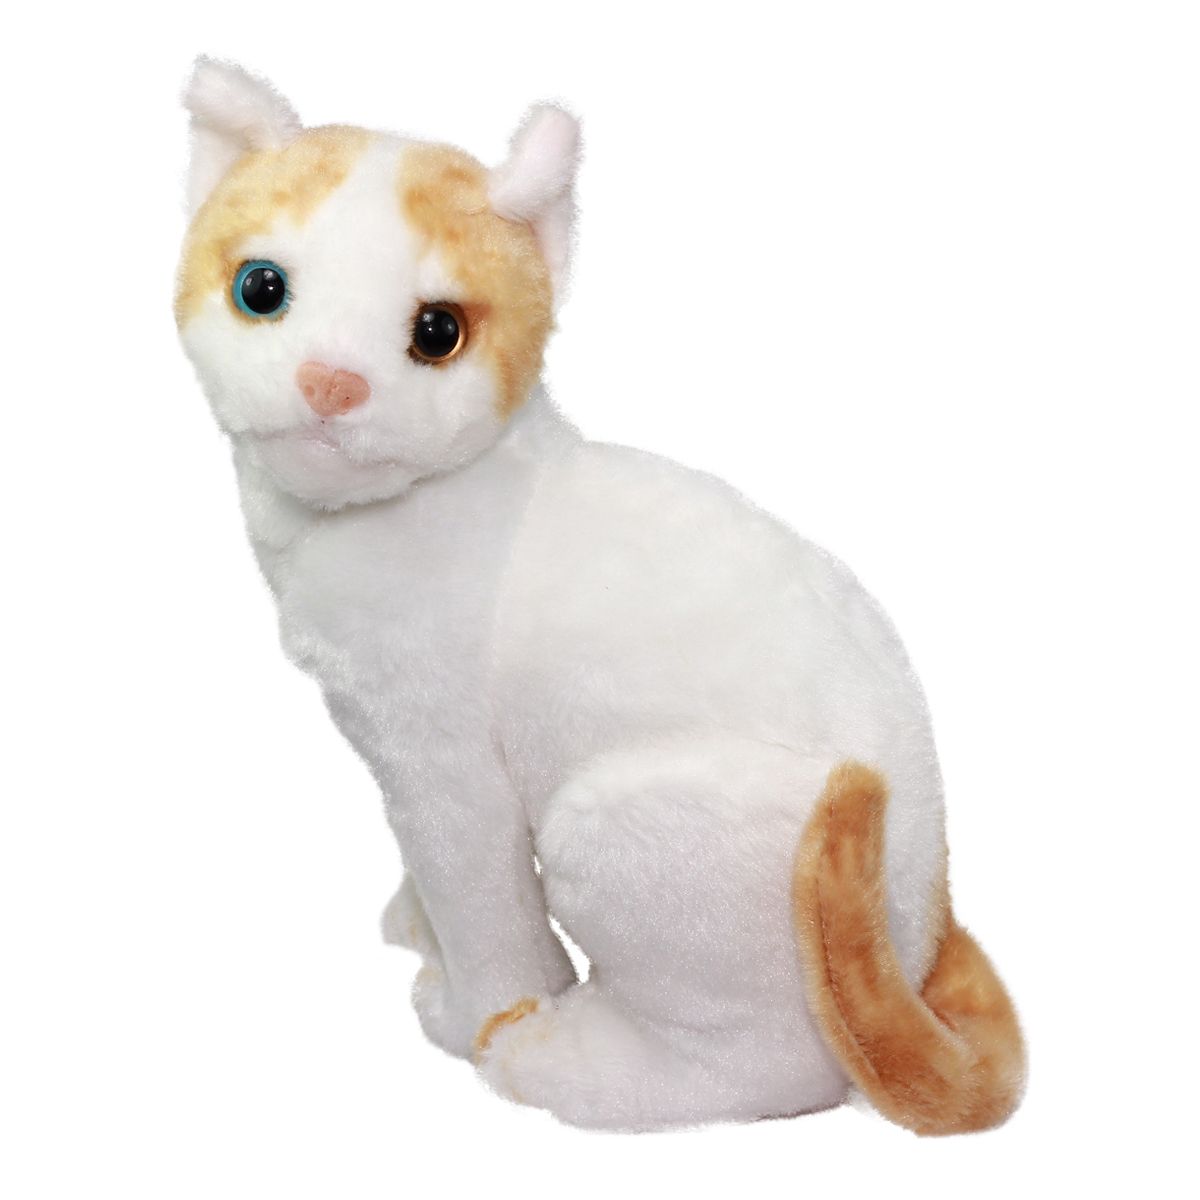 Real Cat Plush Collection Stuffed Animal Toy White/Beige Exotic Short Hair Cat 10 Inches